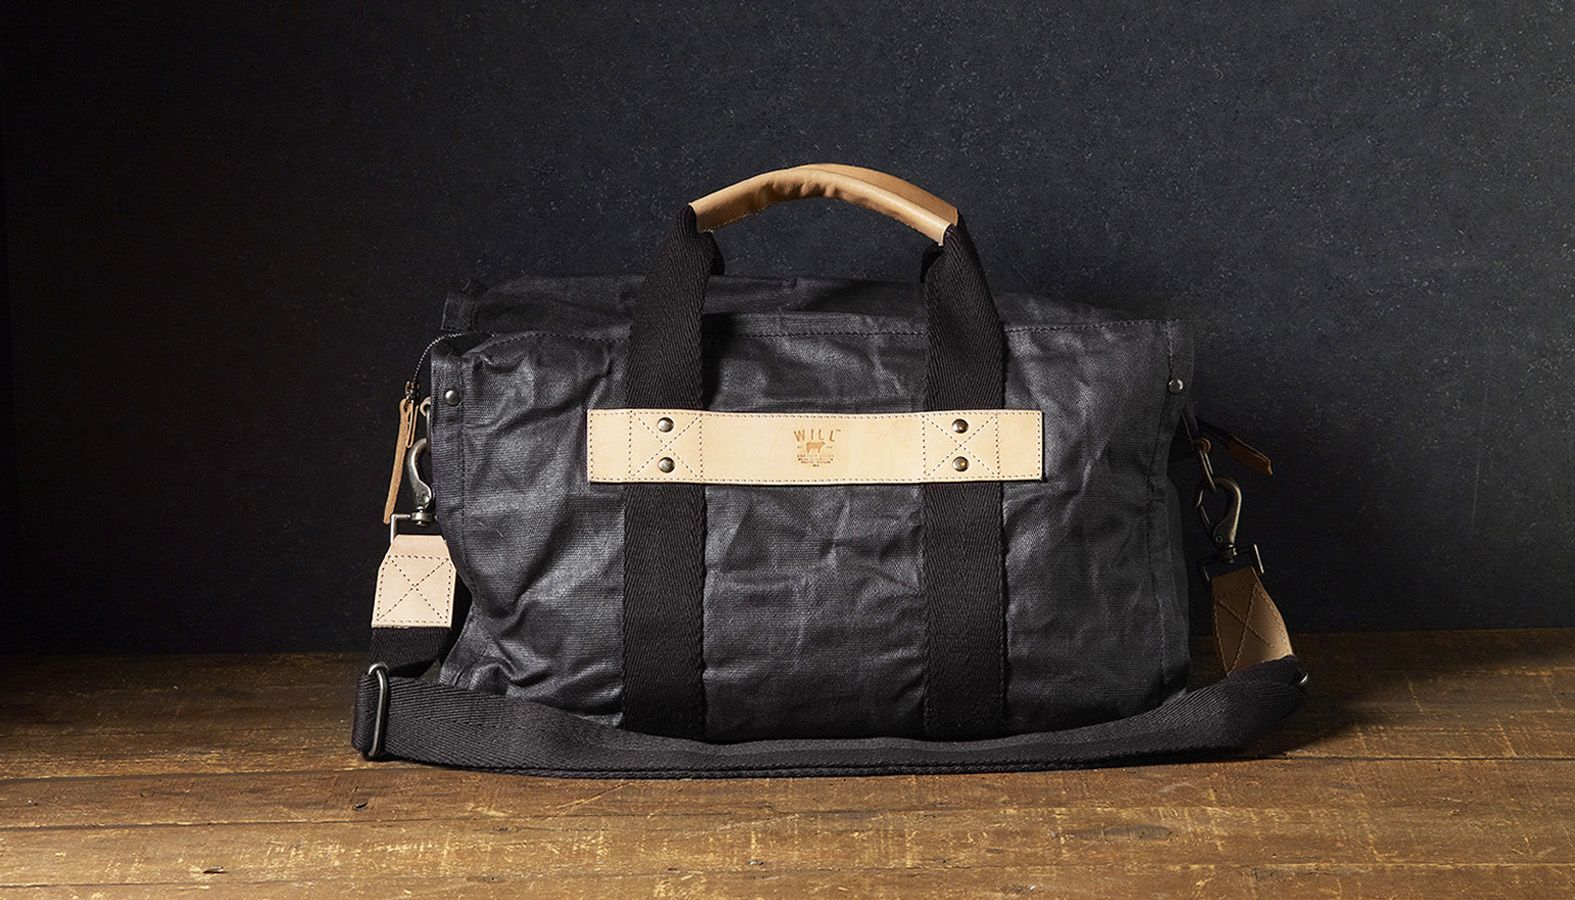 Will Leather Goods may have outdone themselves with this wax coated canvas…